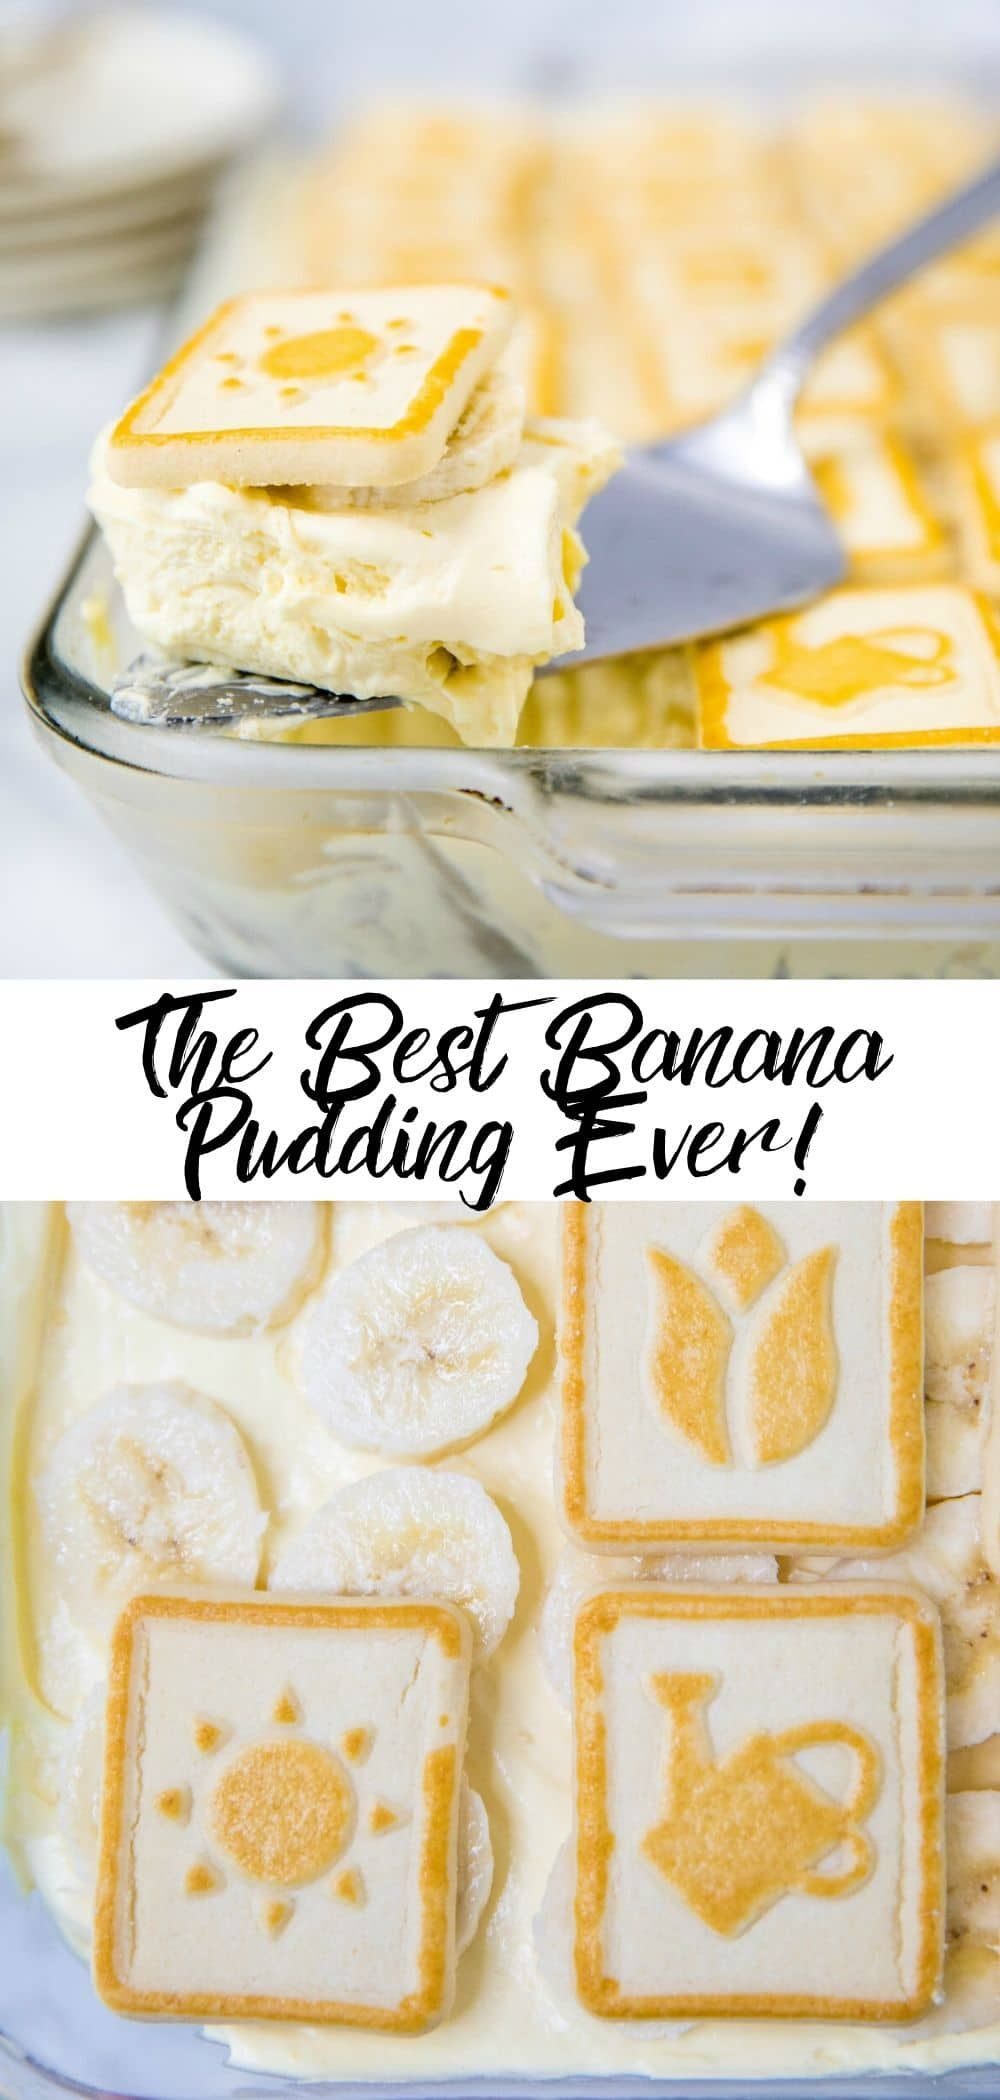 Seriously Guys This Is The Best Banana Pudding Ever Recipe In 2020 Best Banana Pudding Banana Pudding Banana Pudding Recipes